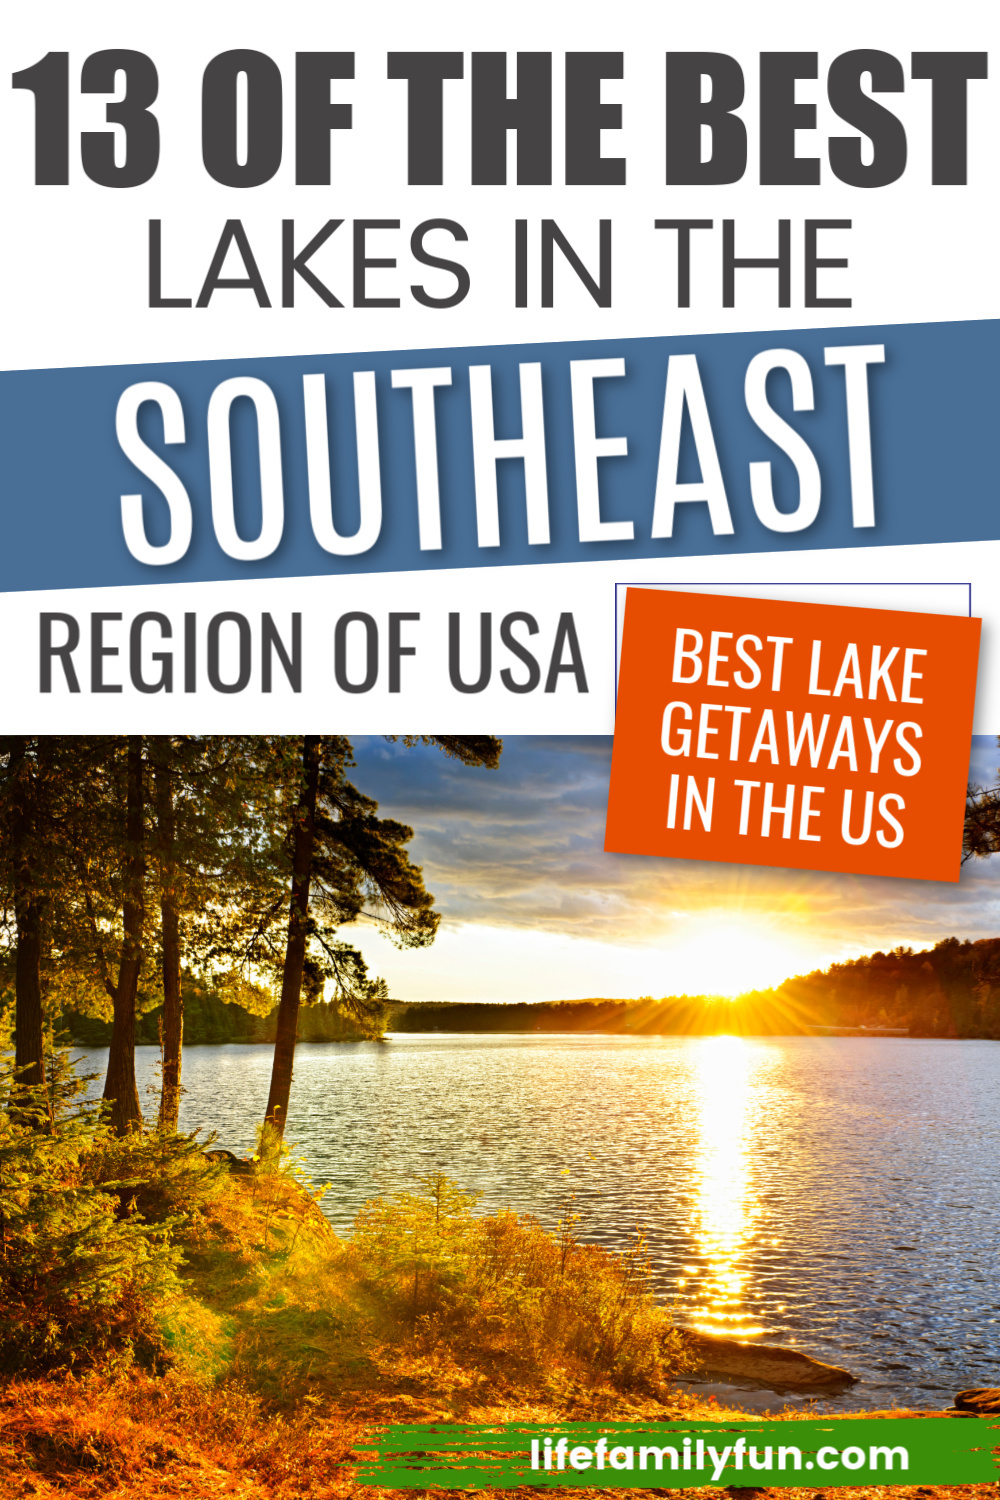 Best Lake Vacations in the Southeast USA